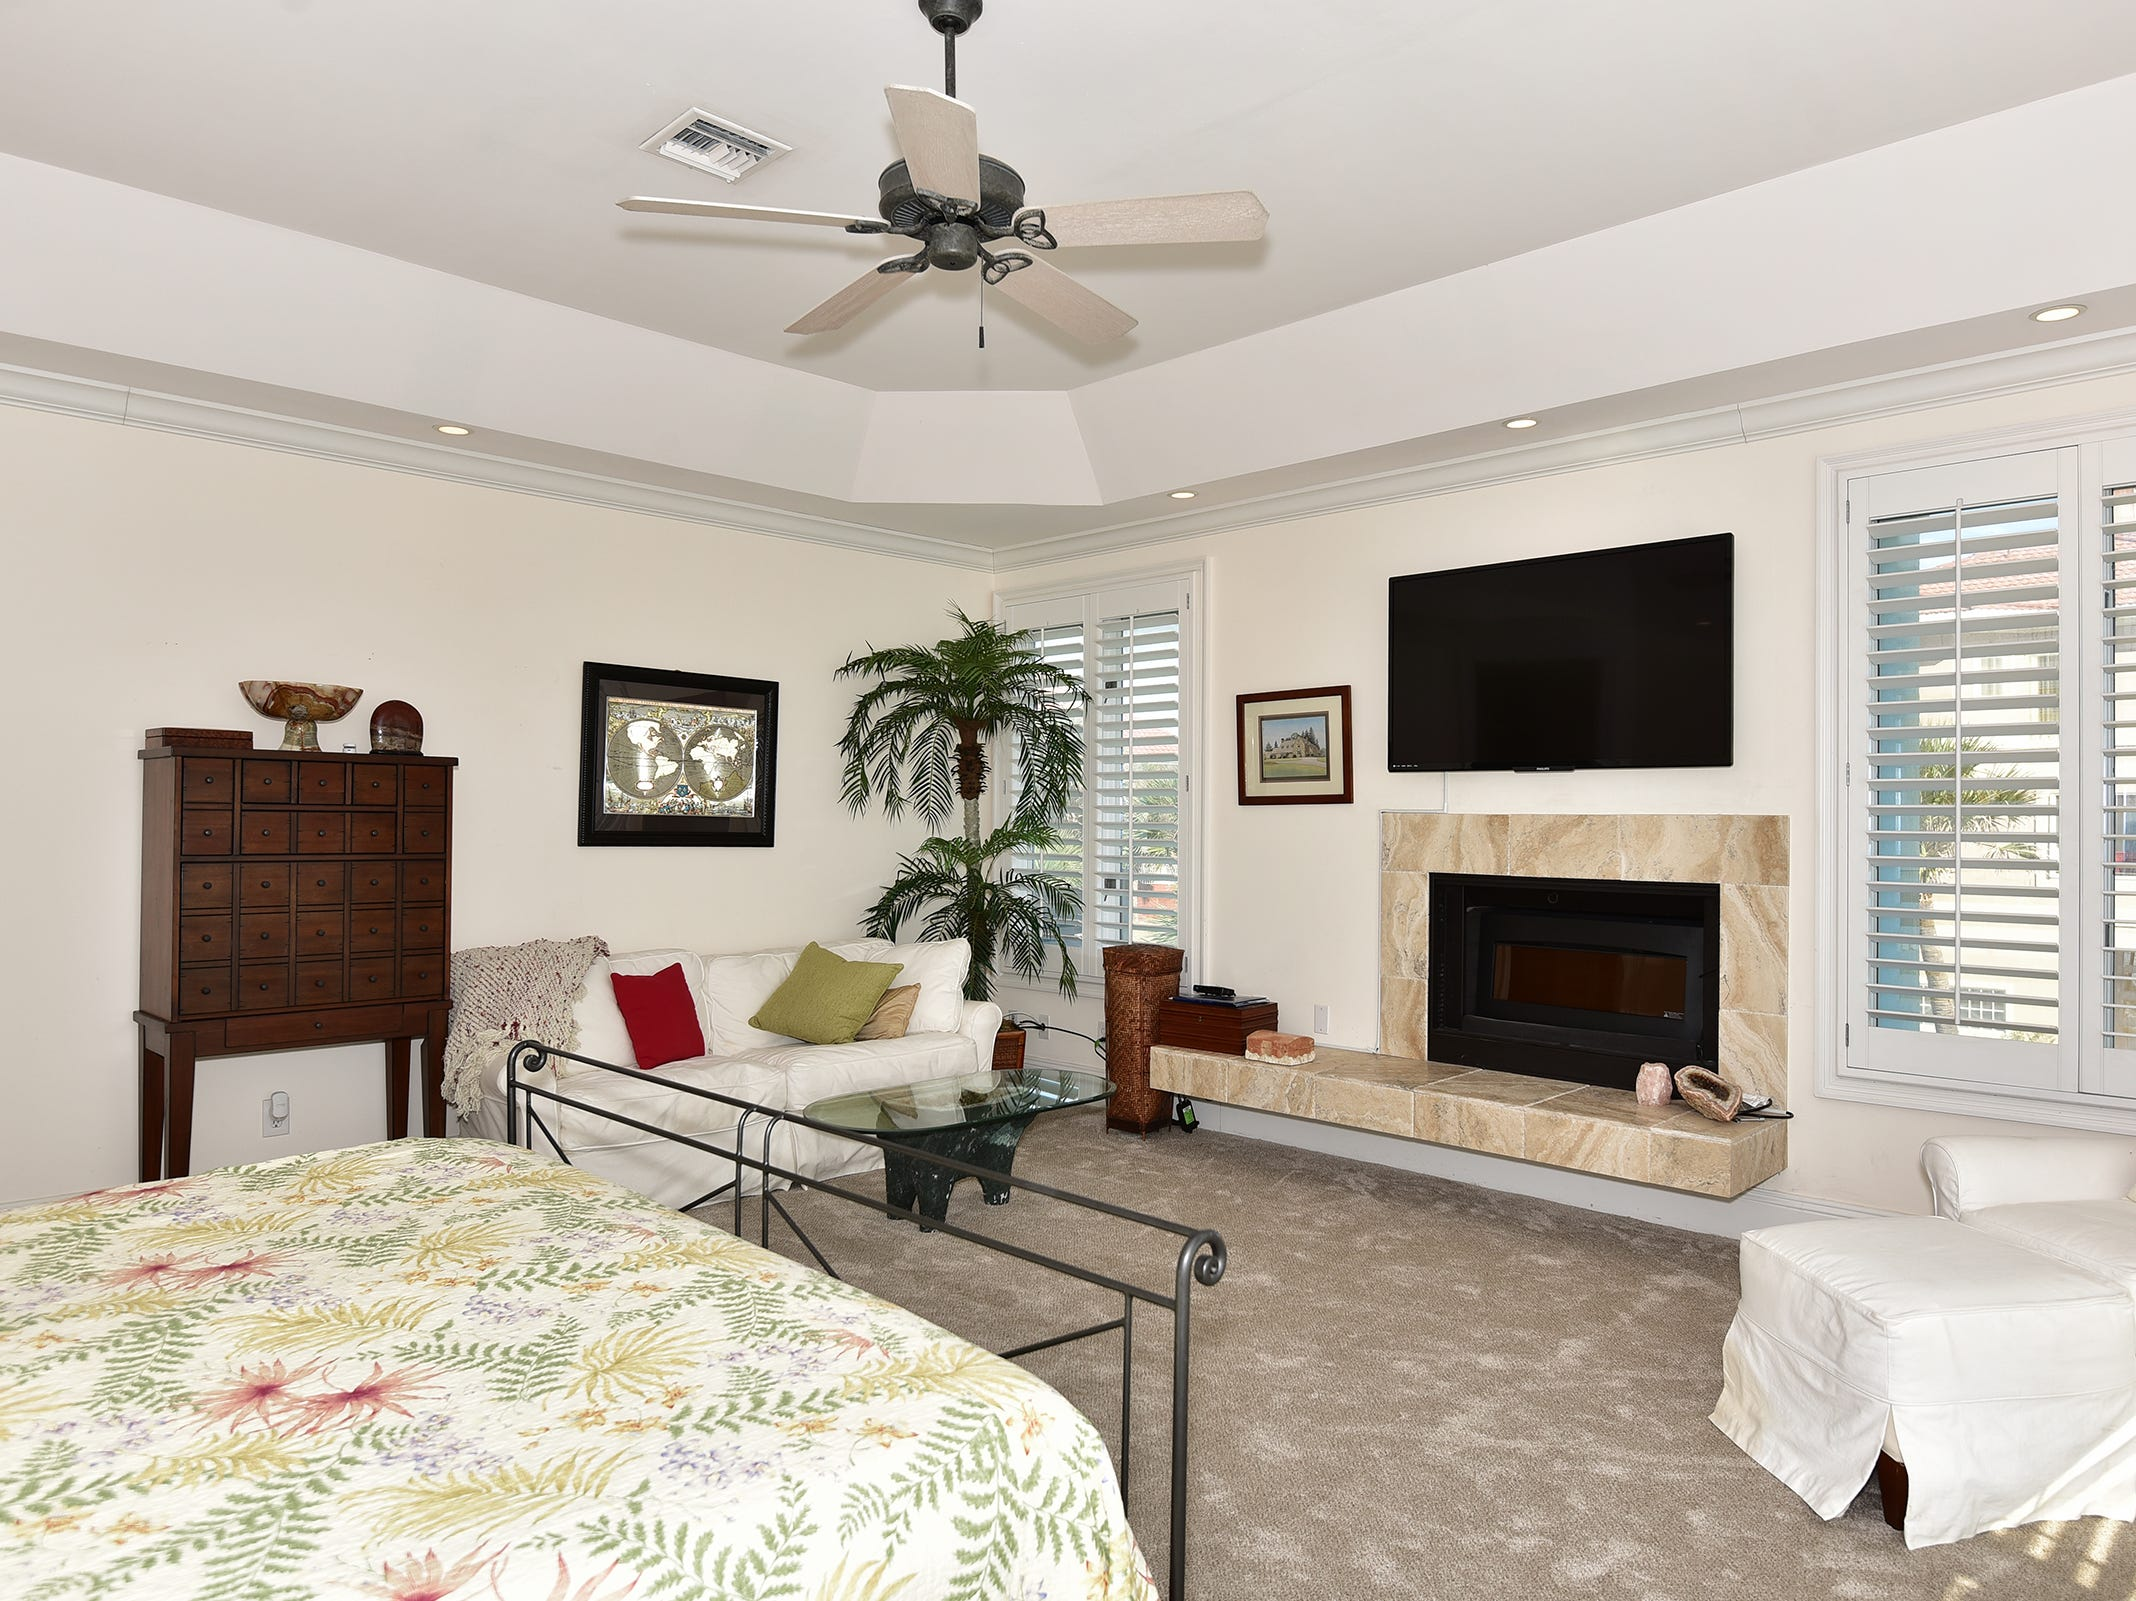 28 Calle HermosaThe master bedroom includes a cozy fireplace.